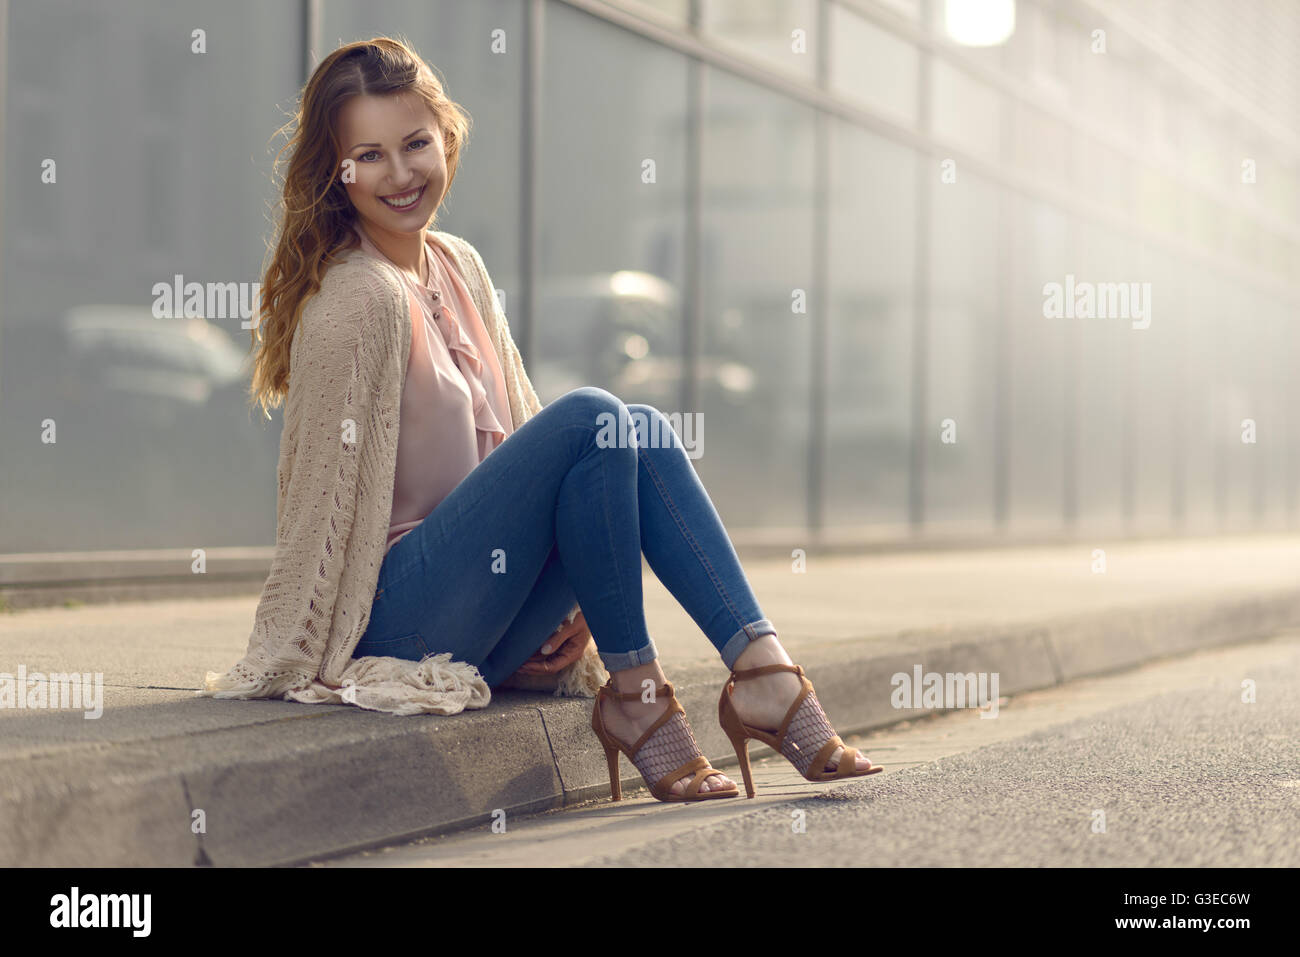 Smiling pretty trendy young woman sitting relaxing on a sidewalk on an urban street in her high heels and fashionable - Stock Image